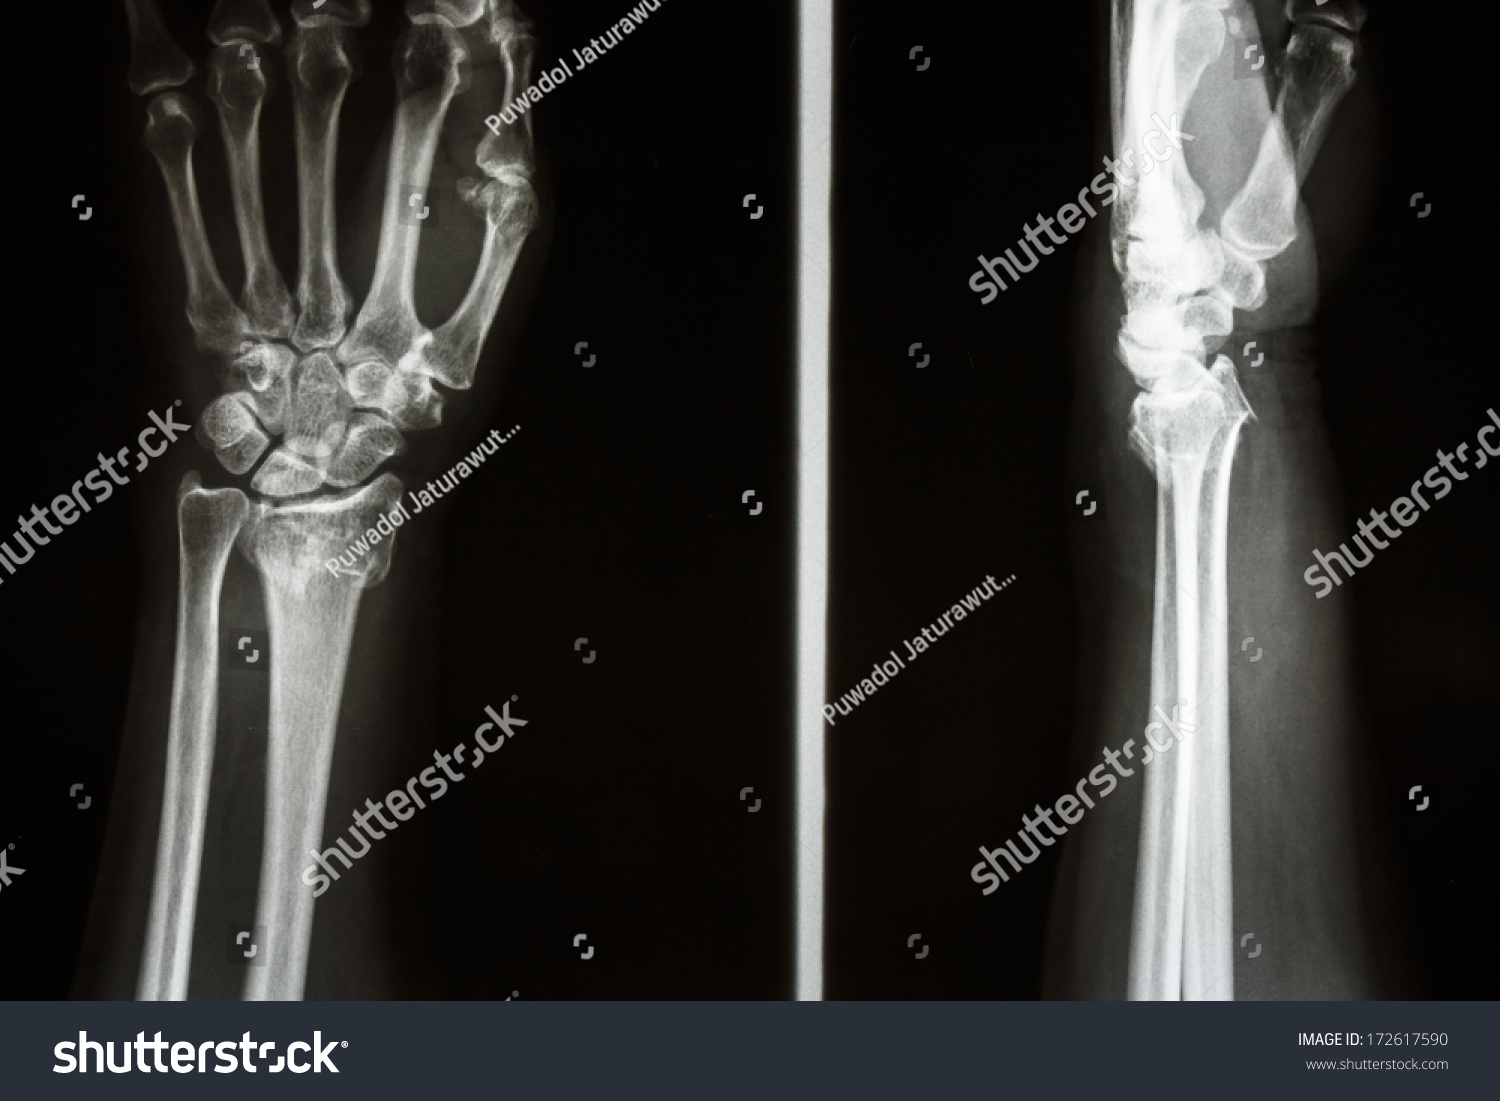 Film X-Ray Show Fracture Distal Radius (Colles' Fracture) (Wrist) Stock Photo 172617590 : Shutterstock